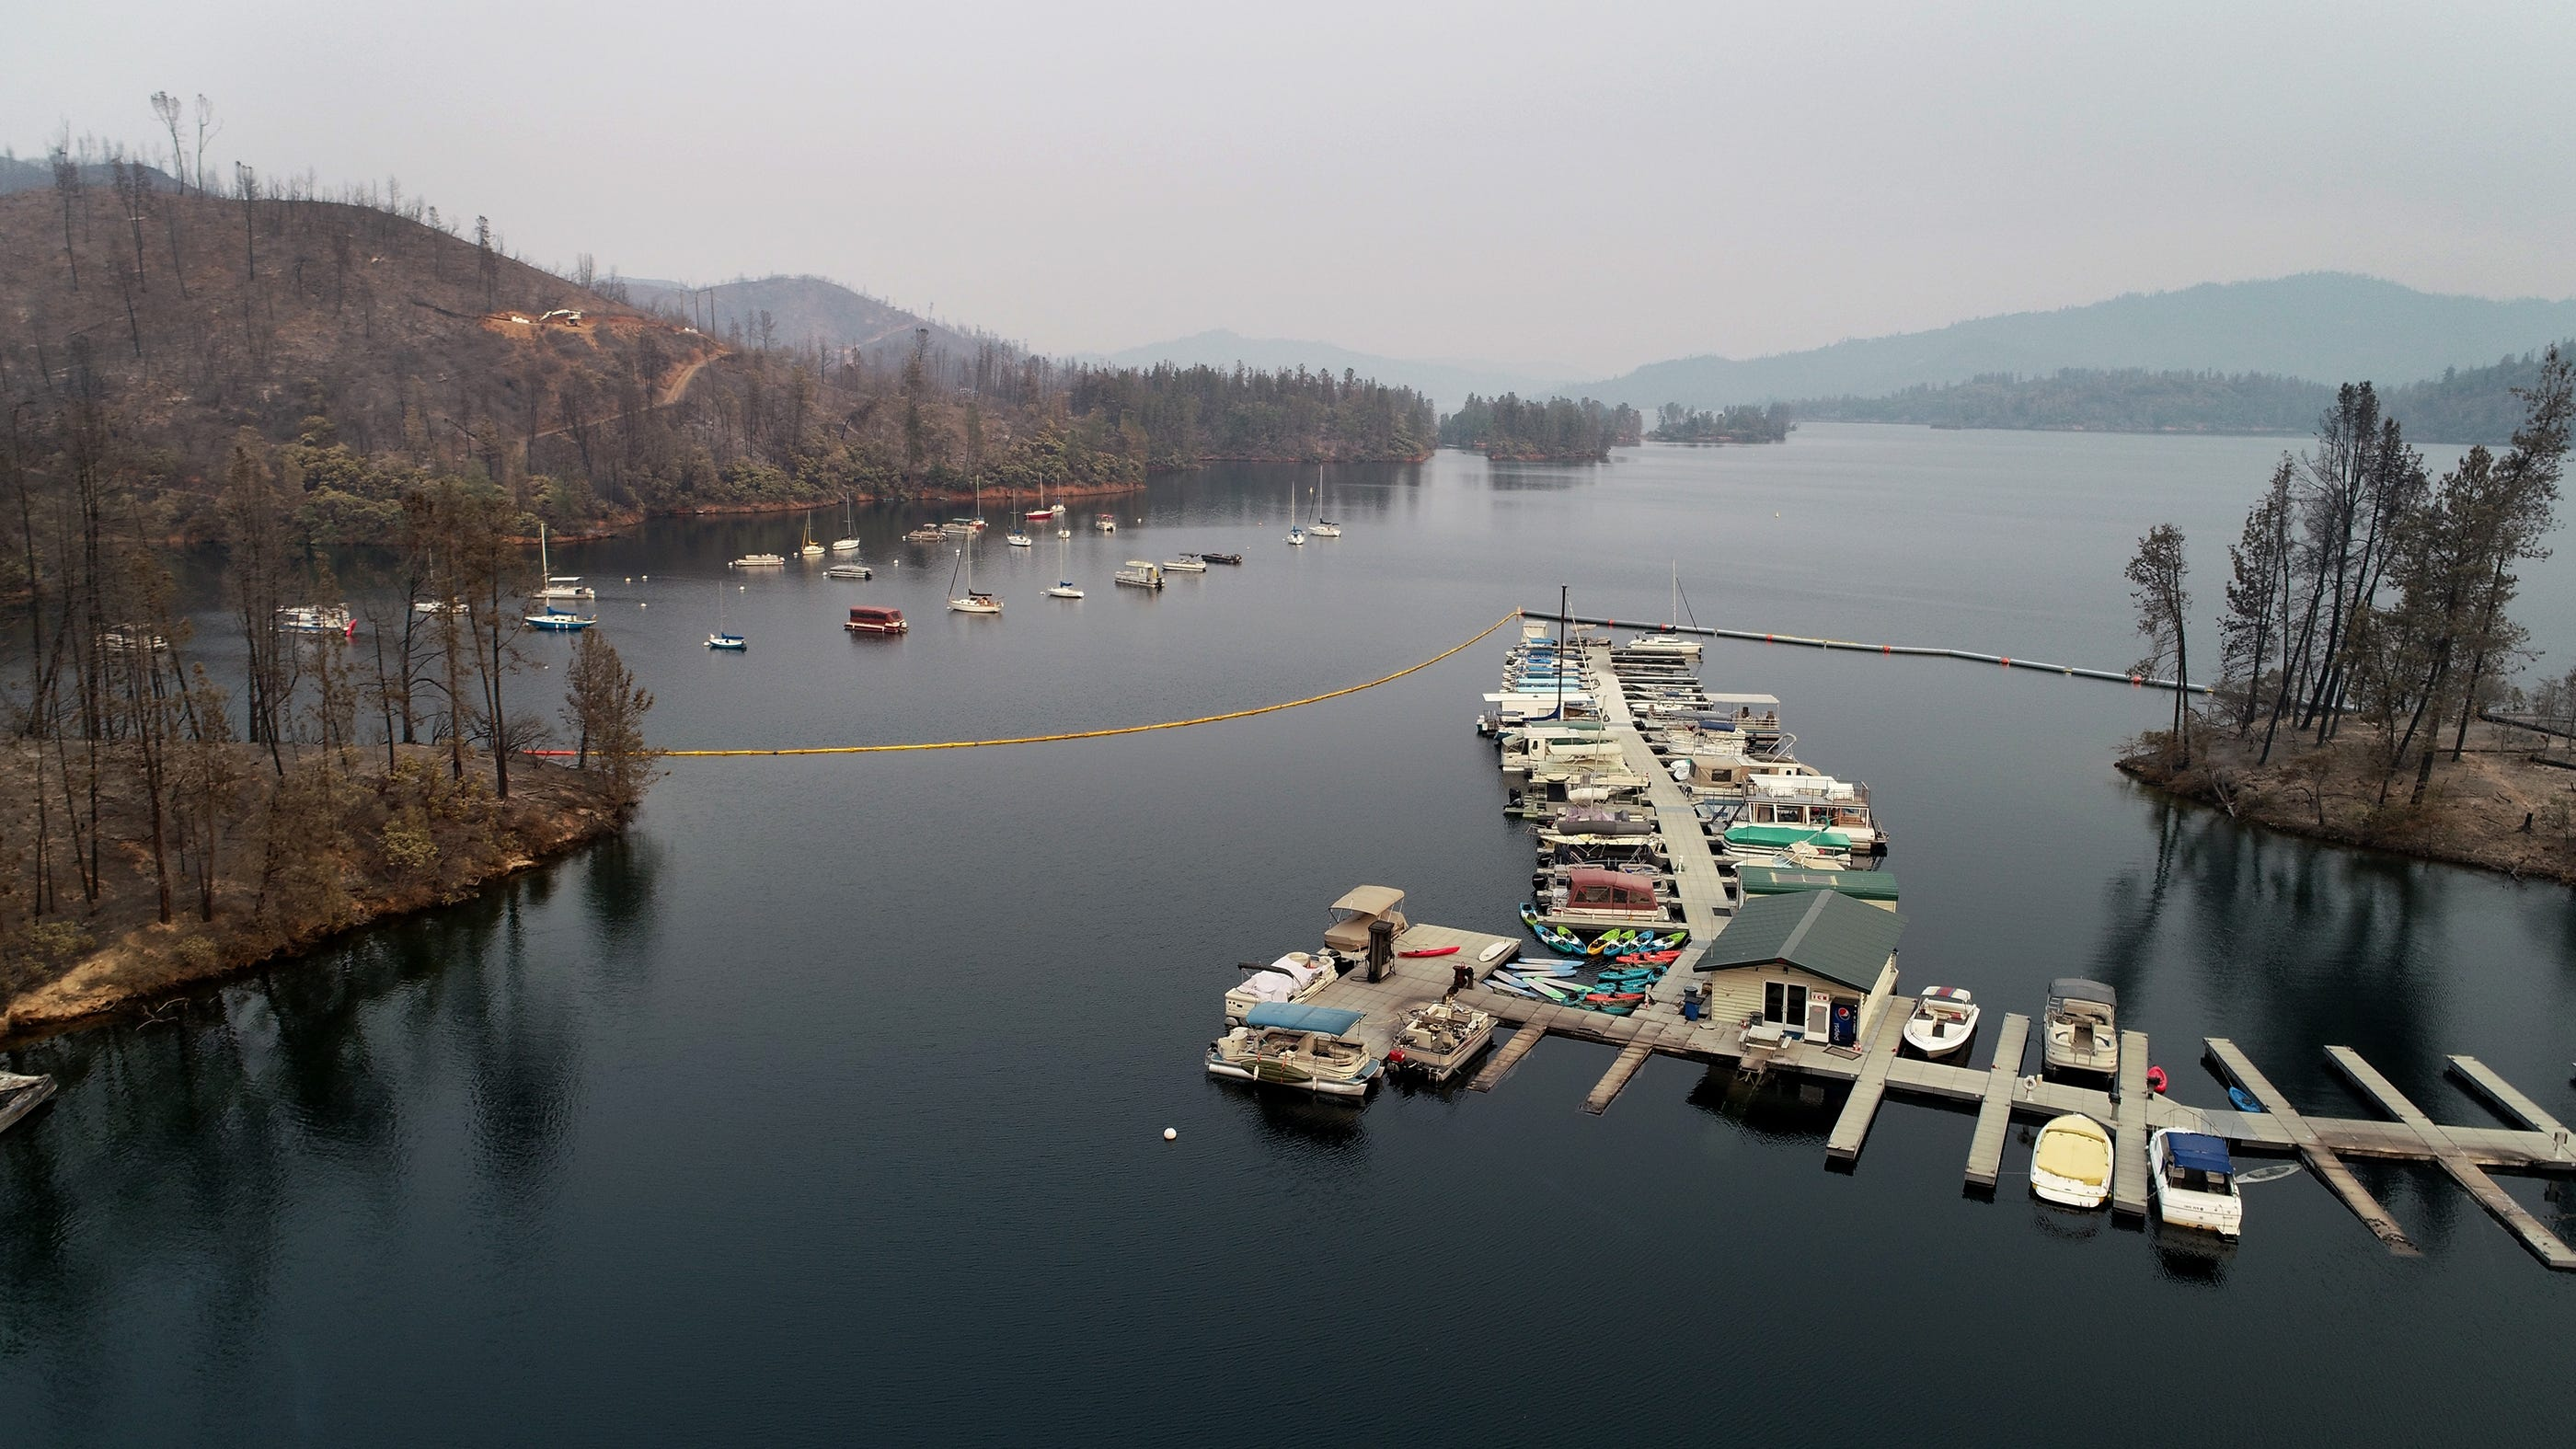 Damage from the Carr Fire is seen at Oak Bottom Marina in Whiskeytown, Calif. Aug. 1, 2018. Several boats were affected by the fire when it rolled through the area late last week.